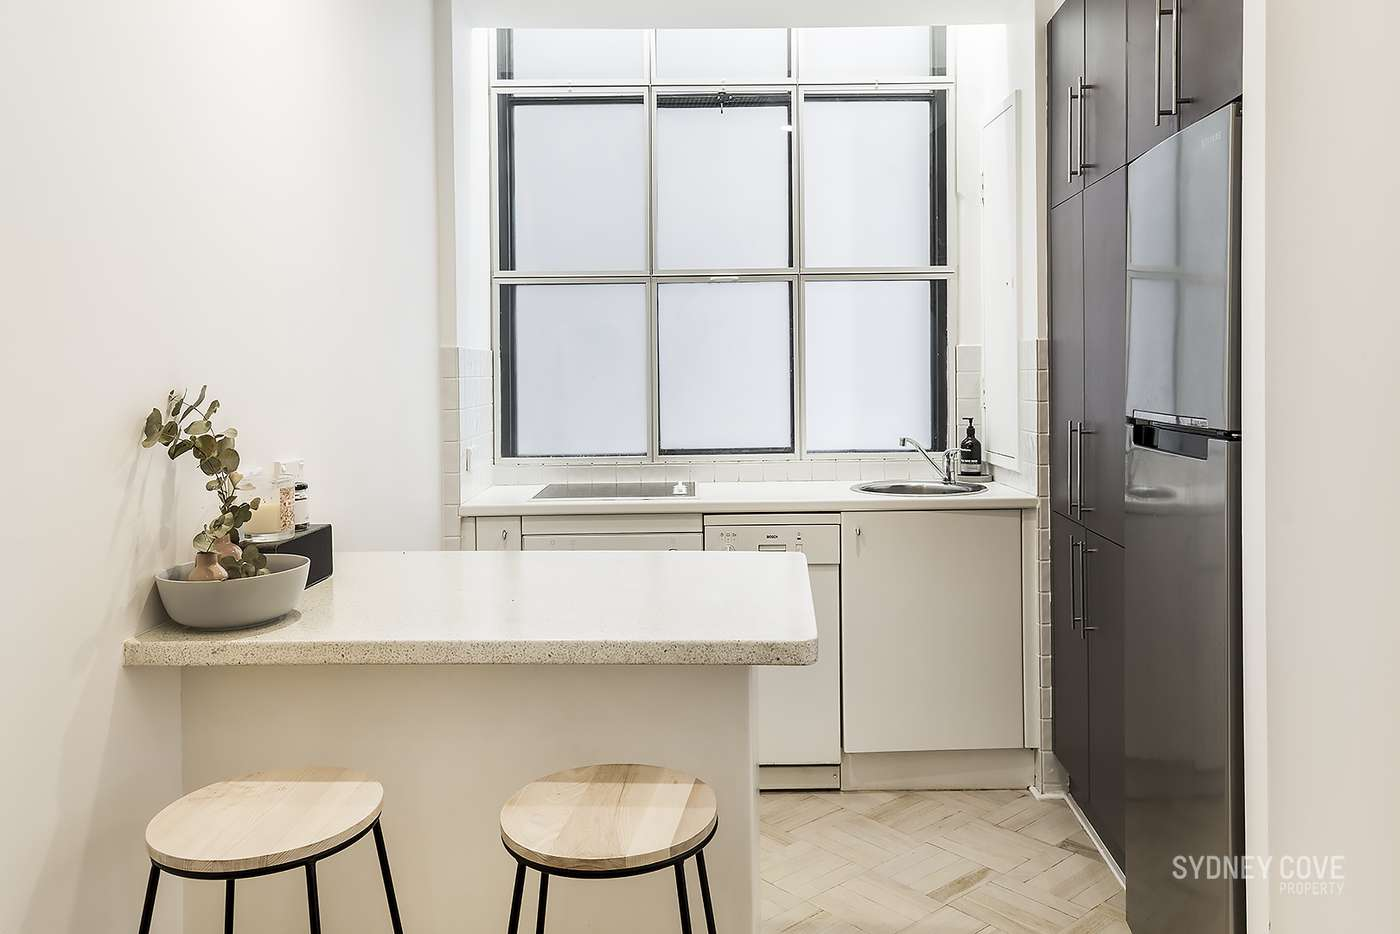 Main view of Homely apartment listing, 4 Bridge St, Sydney NSW 2000